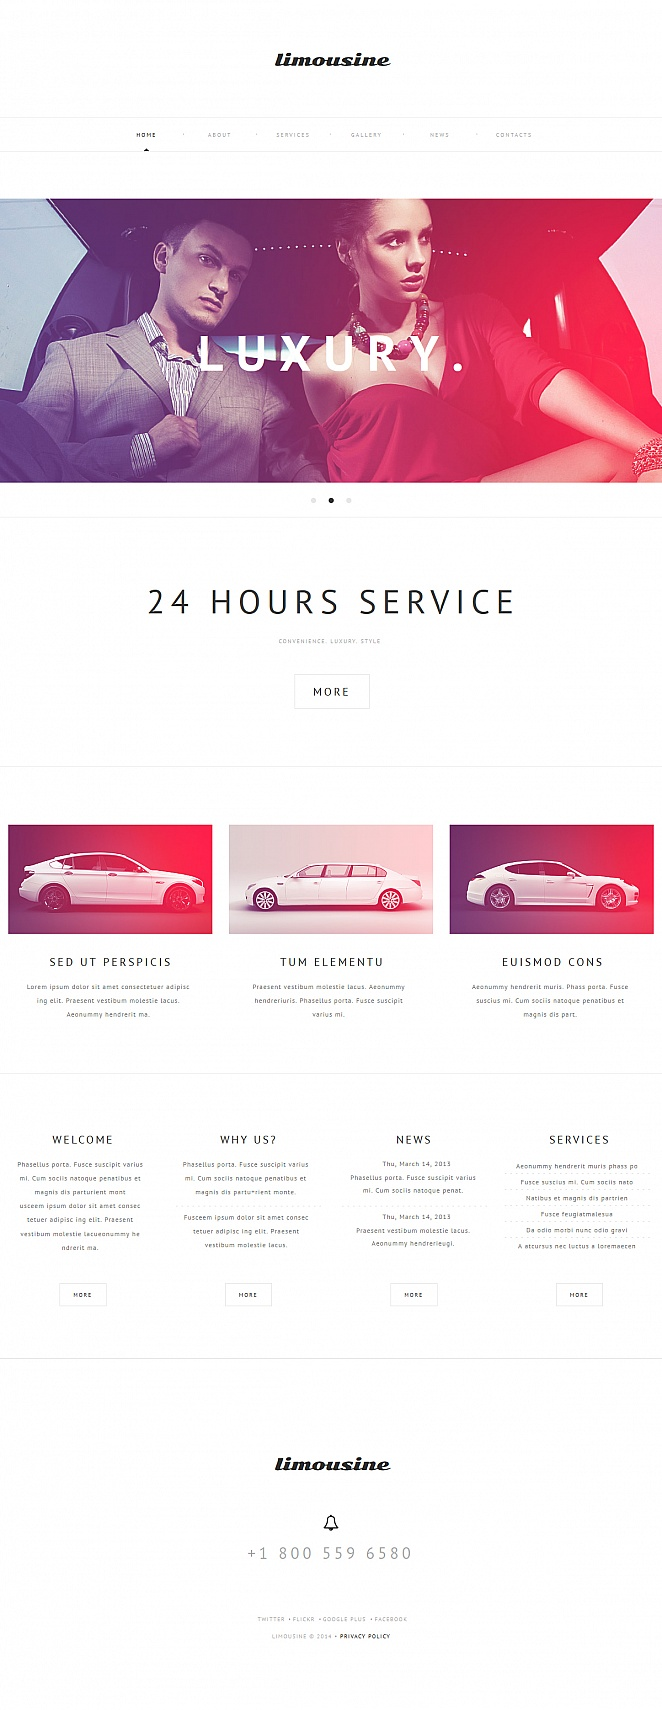 Limousine Services Website Template in Vintage Style - image